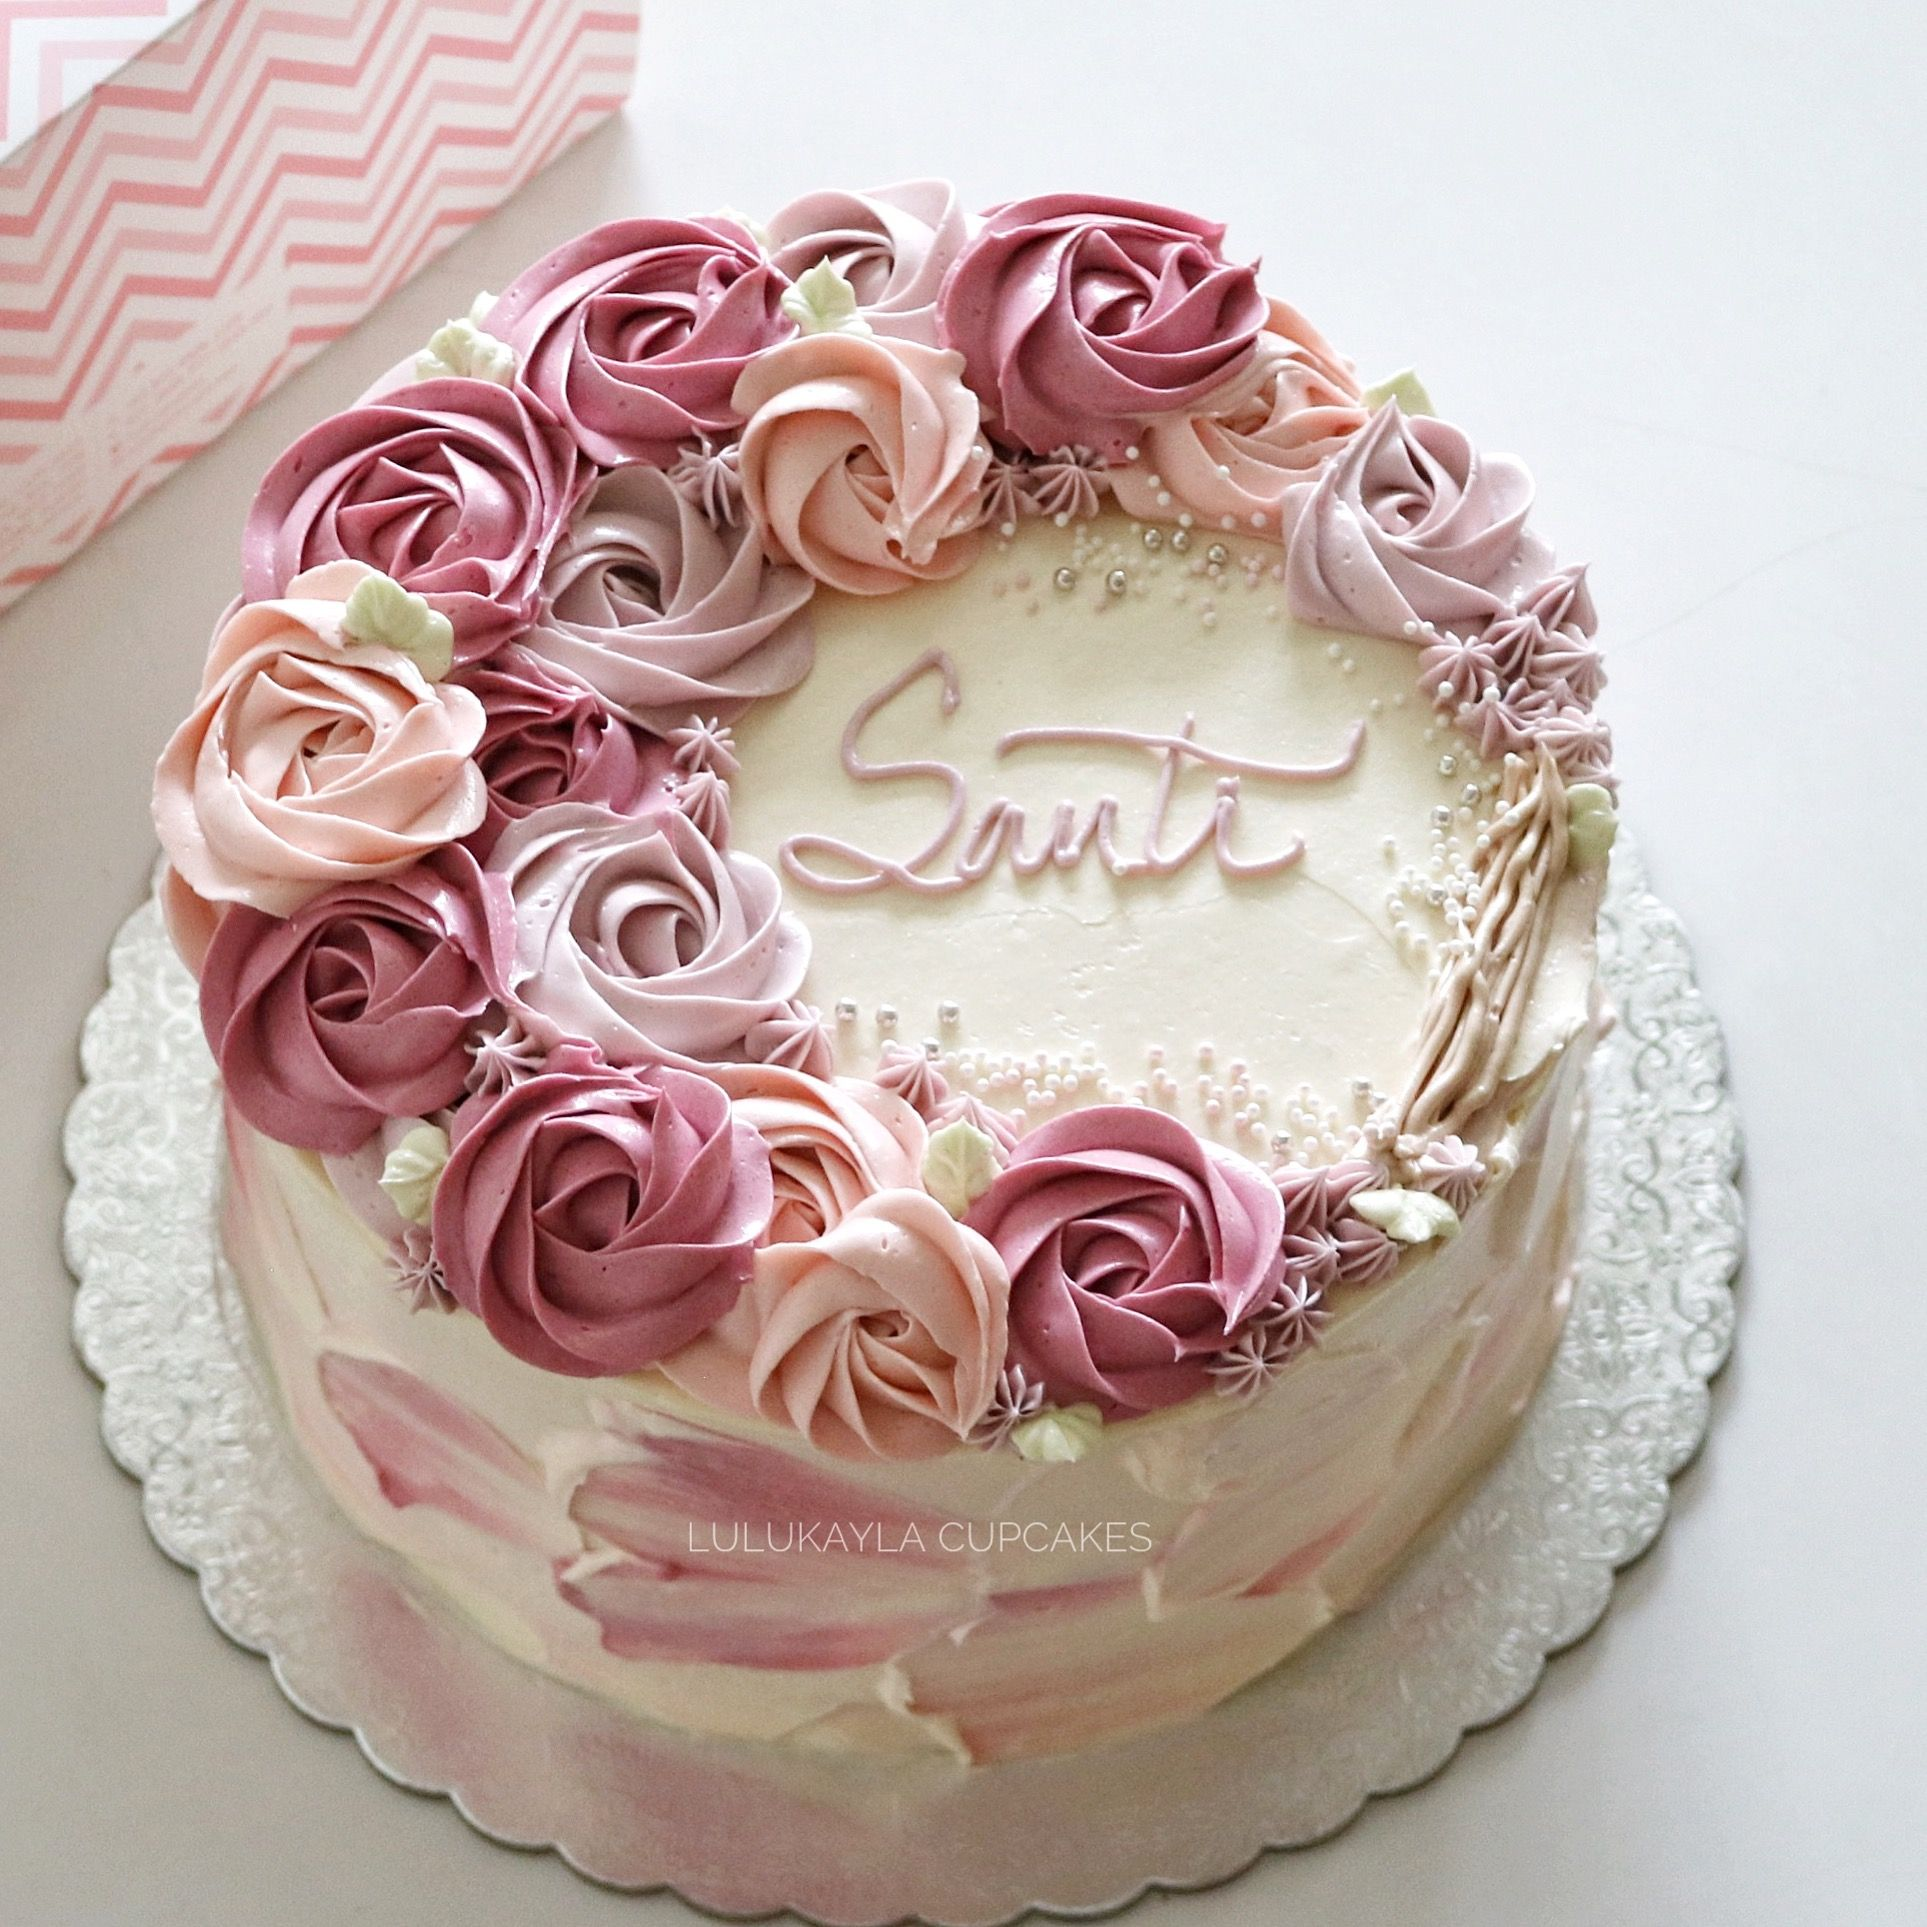 Flower buttercream cake buttercream flower cake pinterest cake flower buttercream cake izmirmasajfo